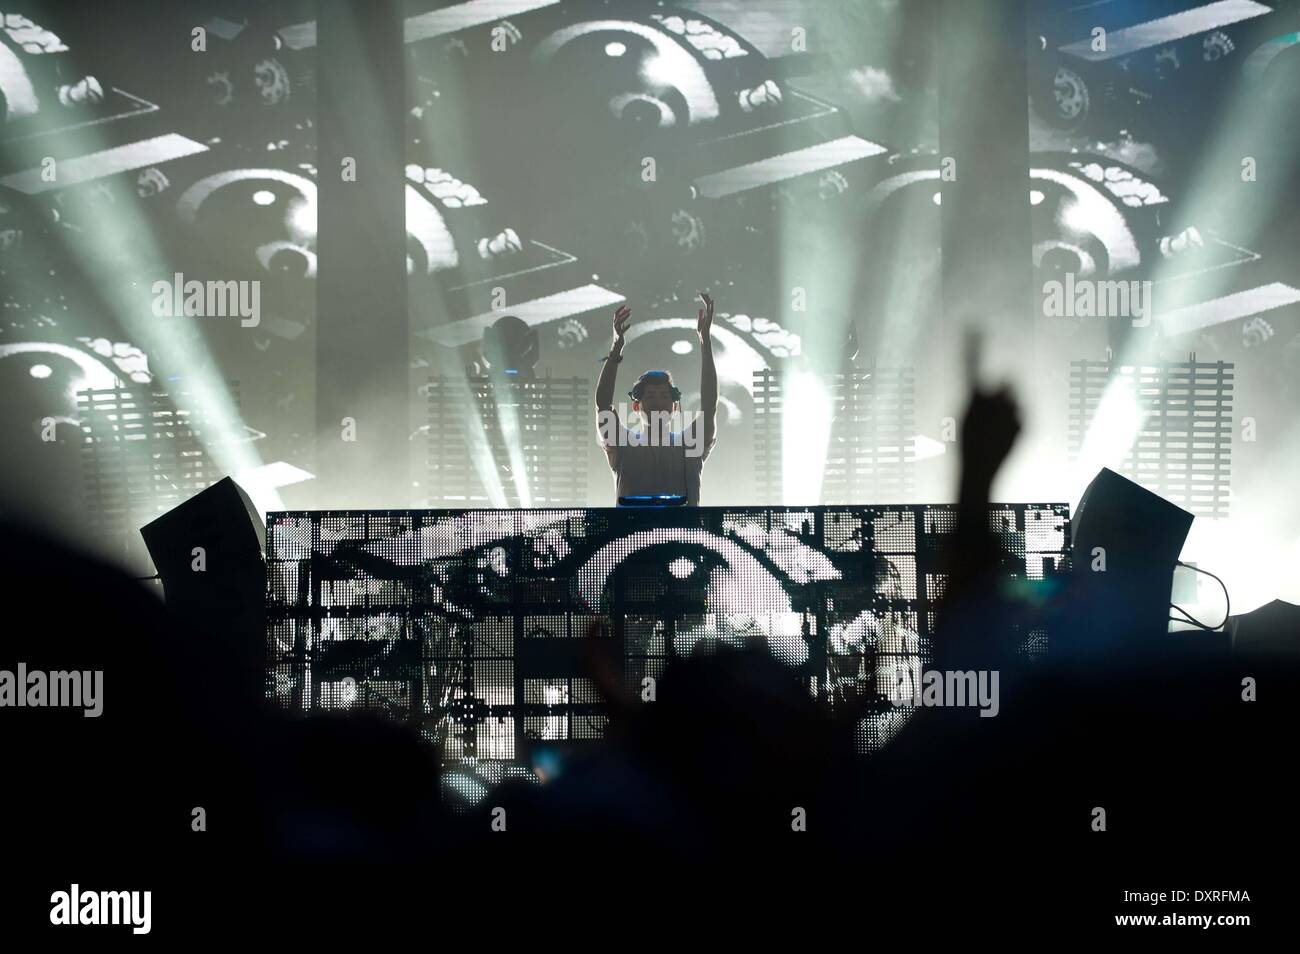 Santiago, Chile. 29th Mar, 2014. DJ and producer Baauer performs during the Lollapalooza Festival 2014 at the O'Higgins Park in Santiago, Chile, March 29, 2014. Credit:  Jorge Villegas/Xinhua/Alamy Live News - Stock Image